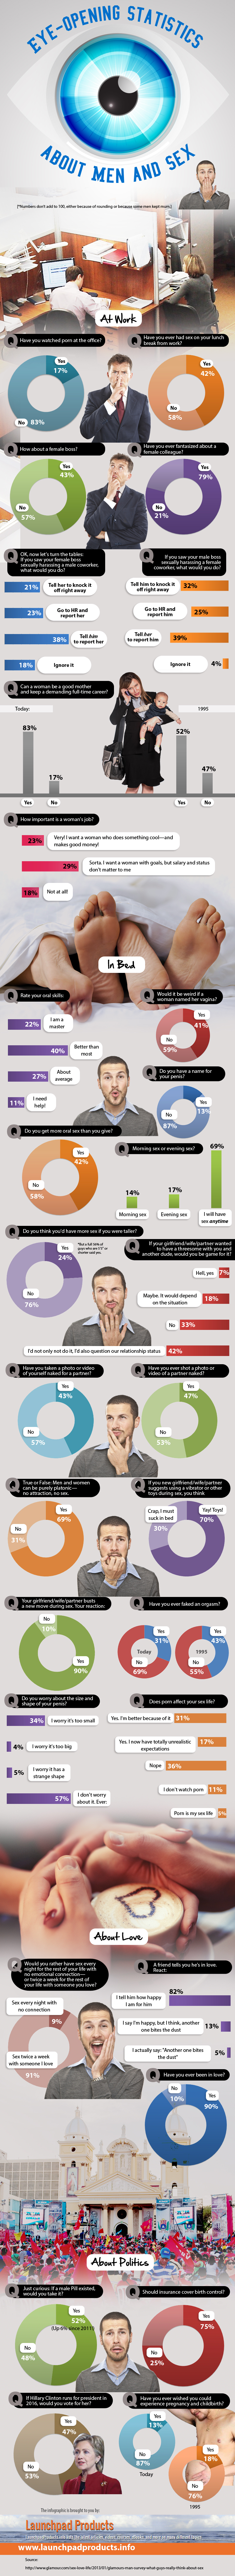 Infographic: Eye-Opening Statistics About Men And Sex